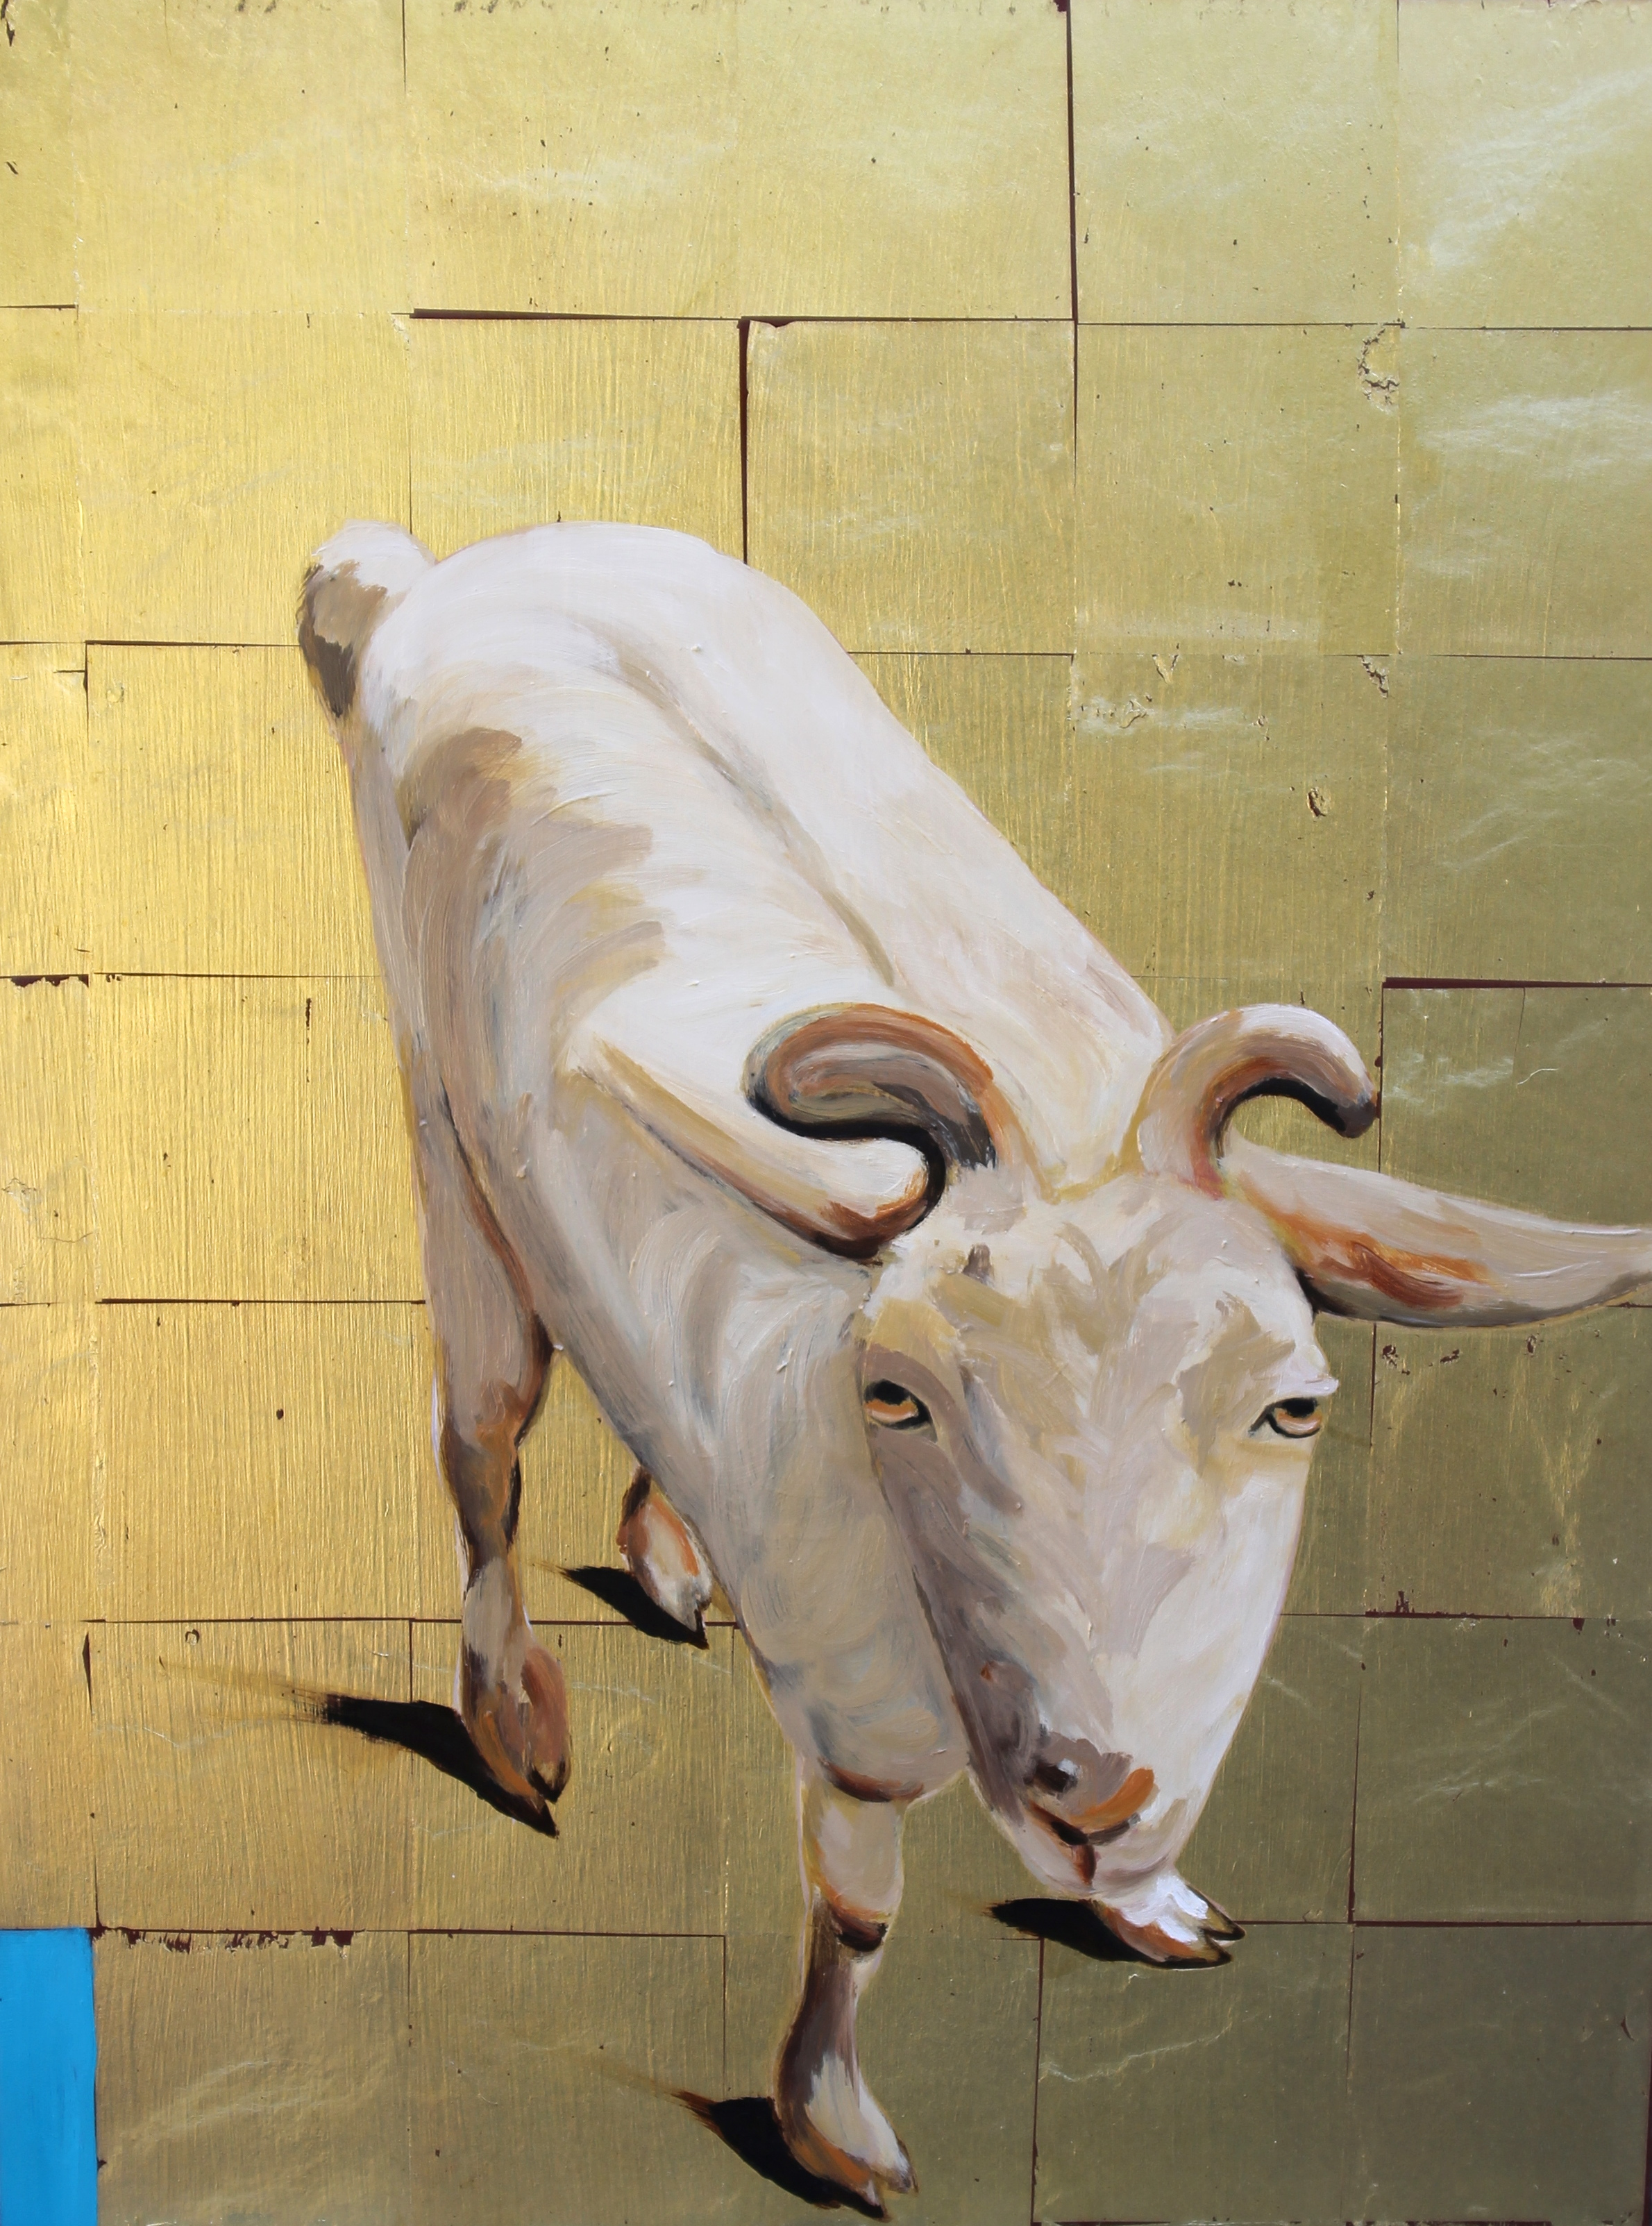 24 x 18 x 2 oil on 23k gold leaf on panel. Sold.